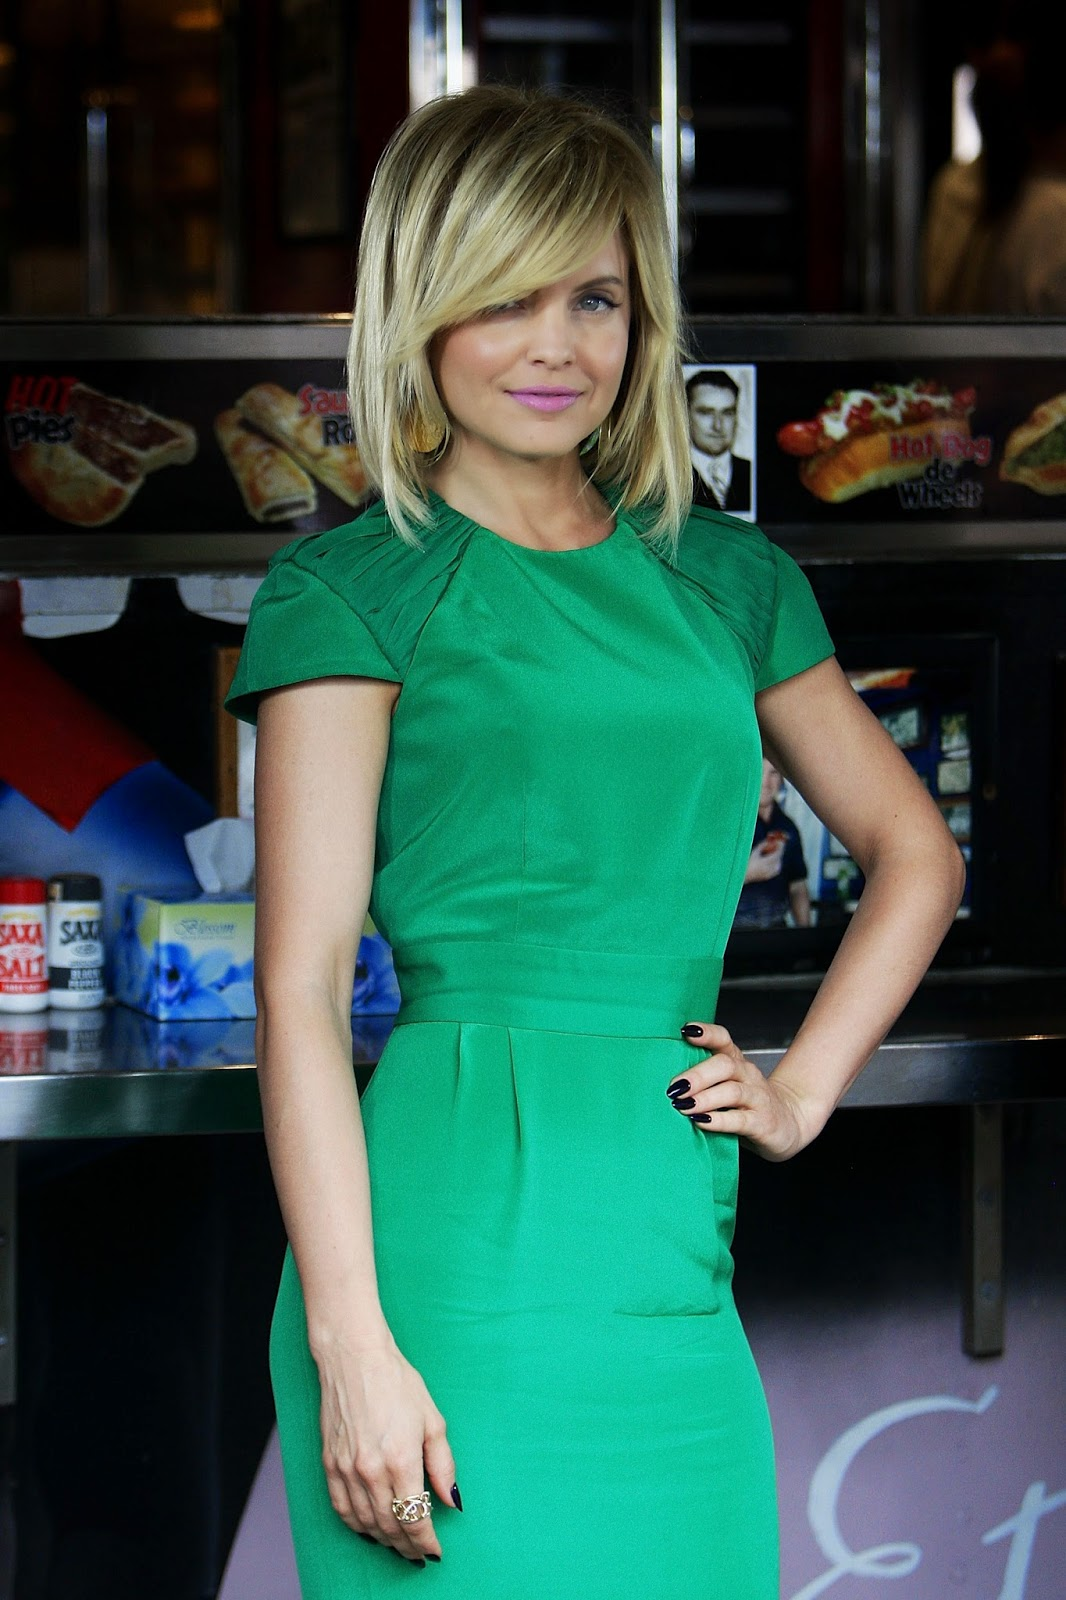 HD Images of Mena Suvari at American Pie Reunion Photocall in Sydney